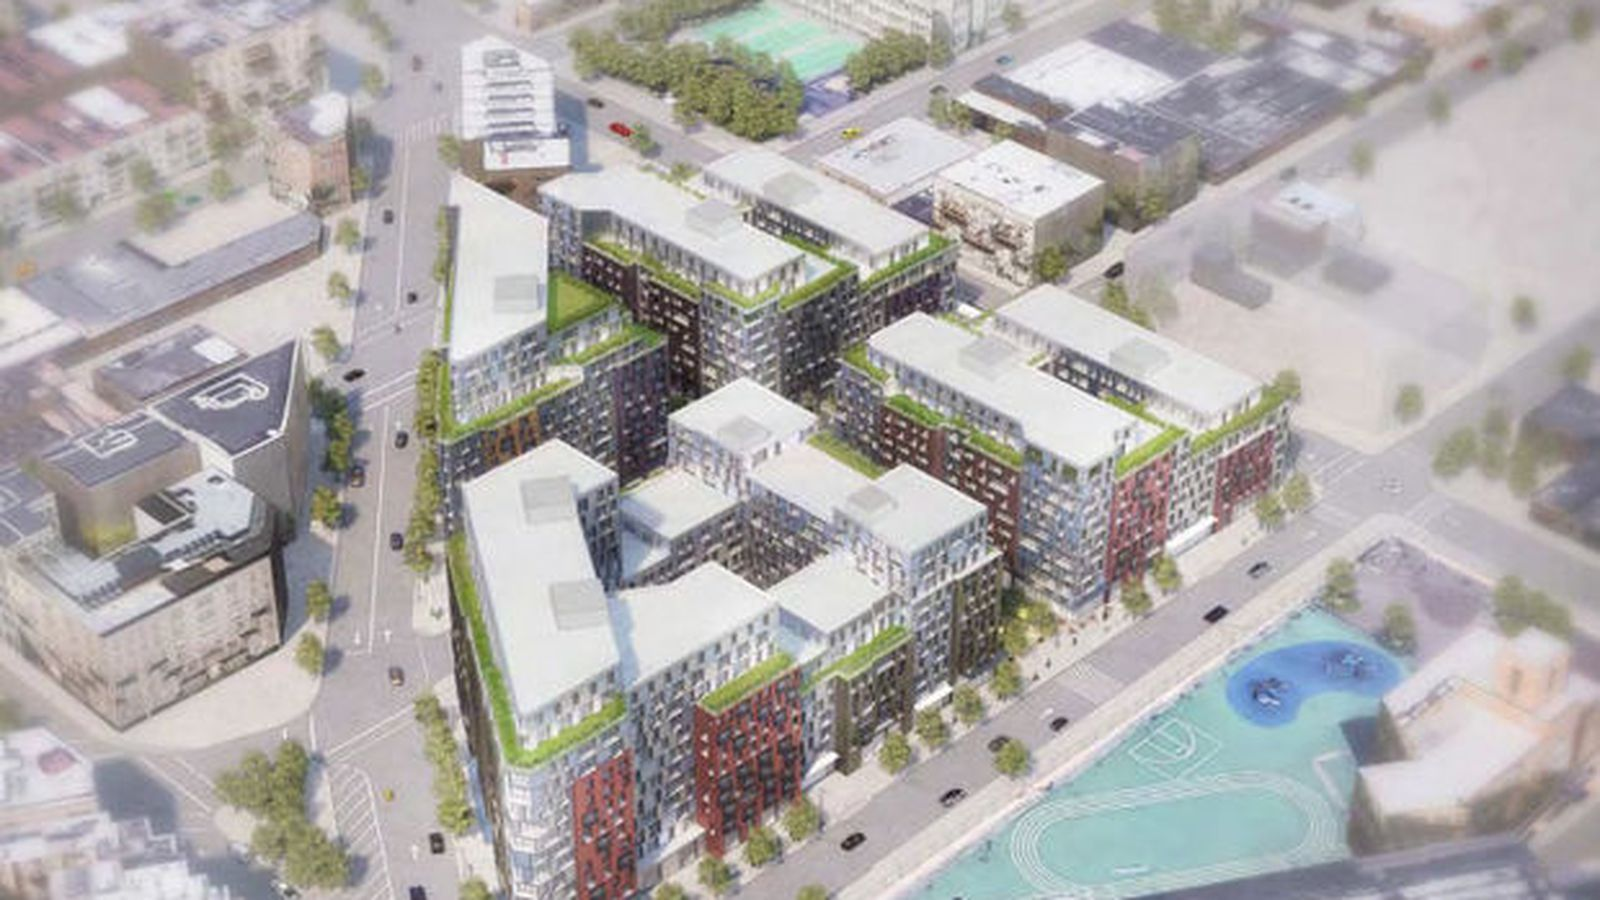 Williamsburg S Pfizer Replacing Megaproject Needs More